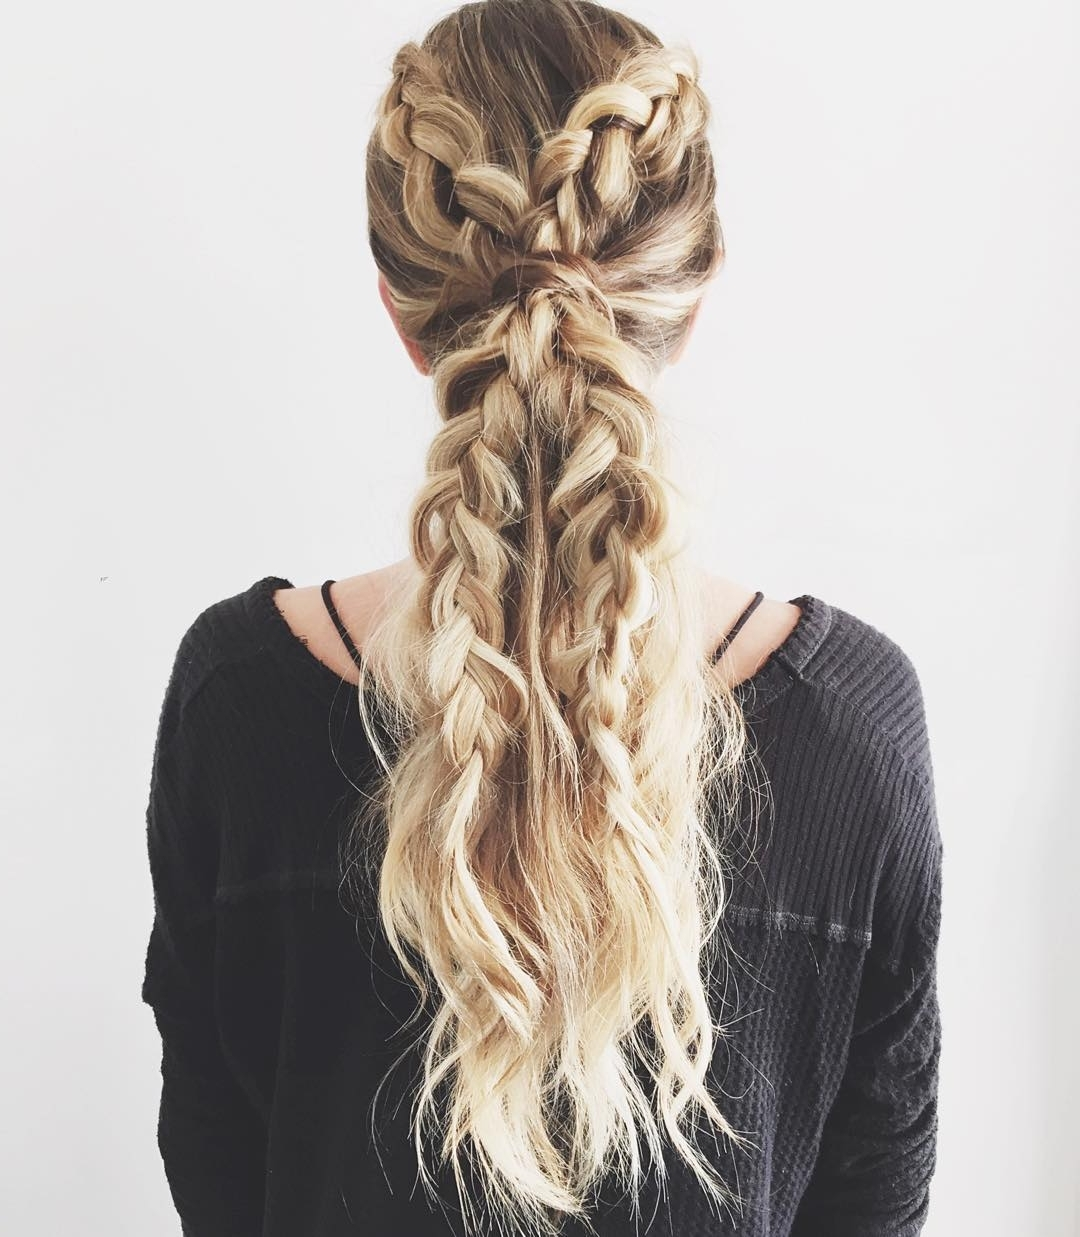 Hairstyle Guru Within Most Up To Date Unique Braided Up Do Ponytail Hairstyles (View 8 of 20)